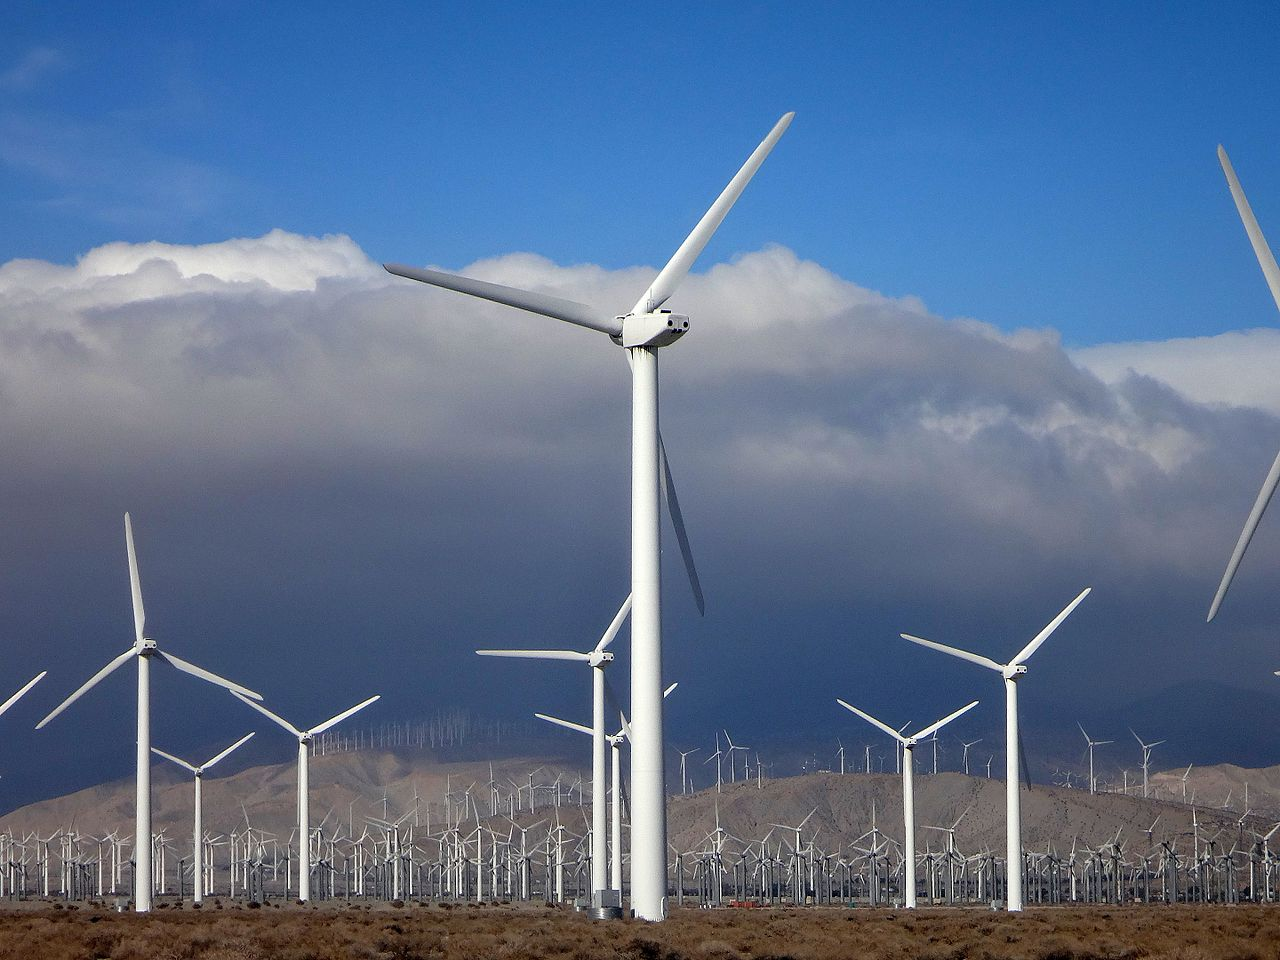 A utility-scale wind power plant in California.